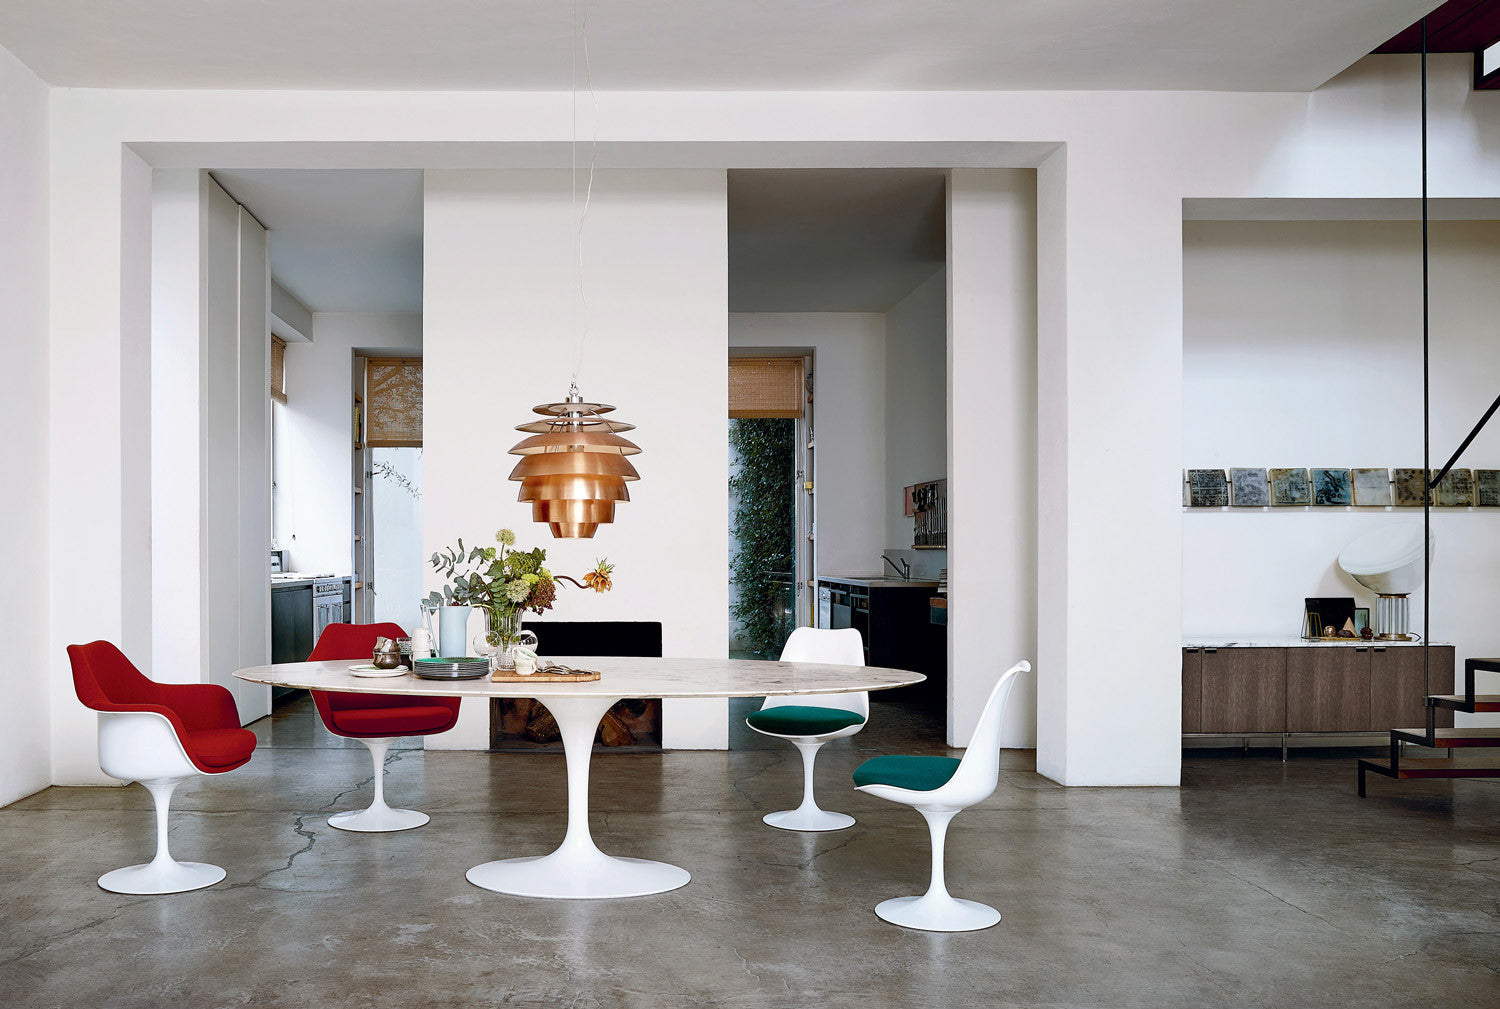 b saarinen knoll product from conference tulip international task chairs chair architonic table en